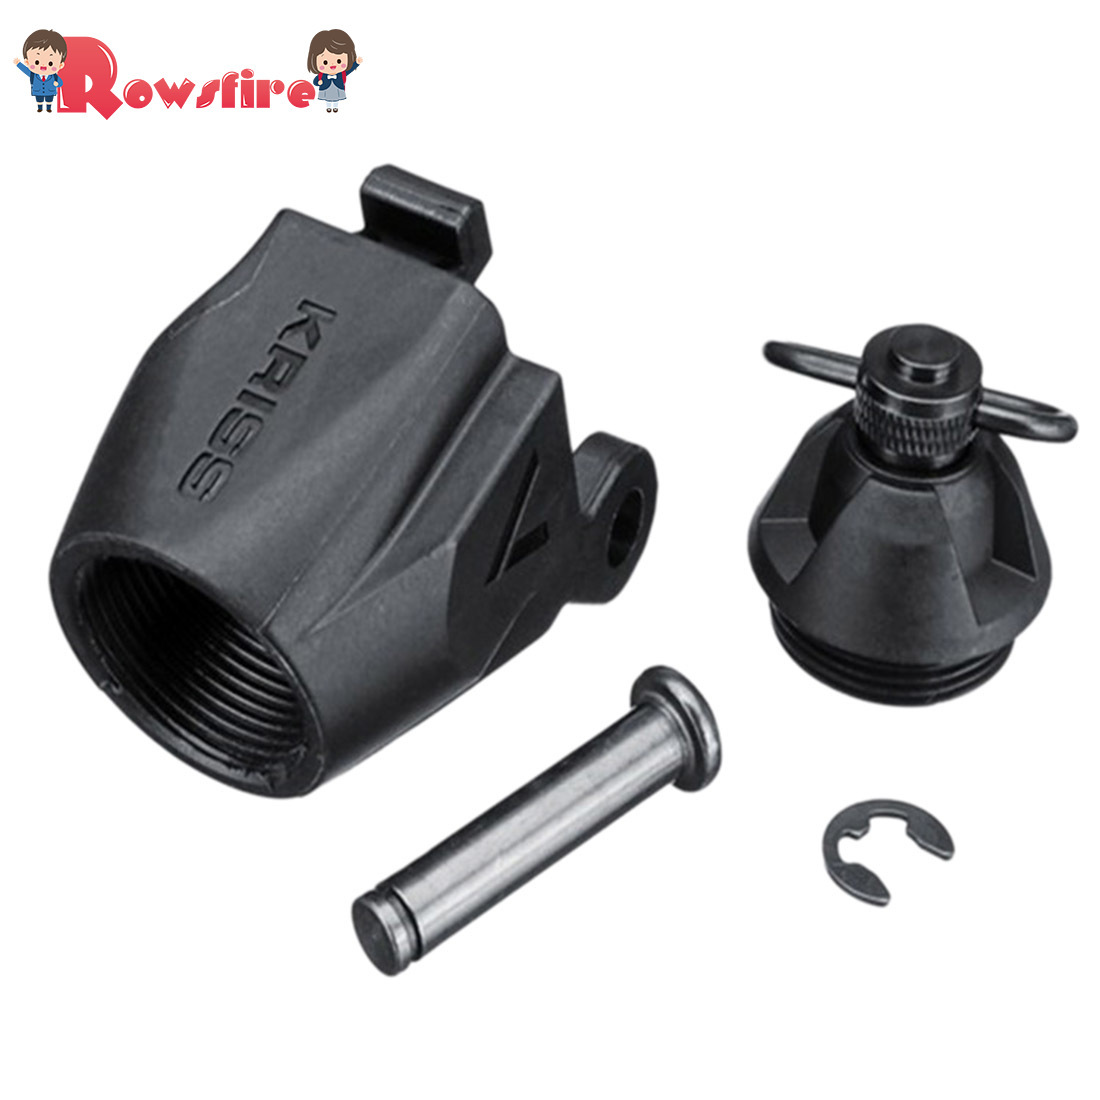 Rowsfire 1 Pcs Original Stock Adaptor For LH Vector Gen.2 Water Gel Beads Blaster - Black